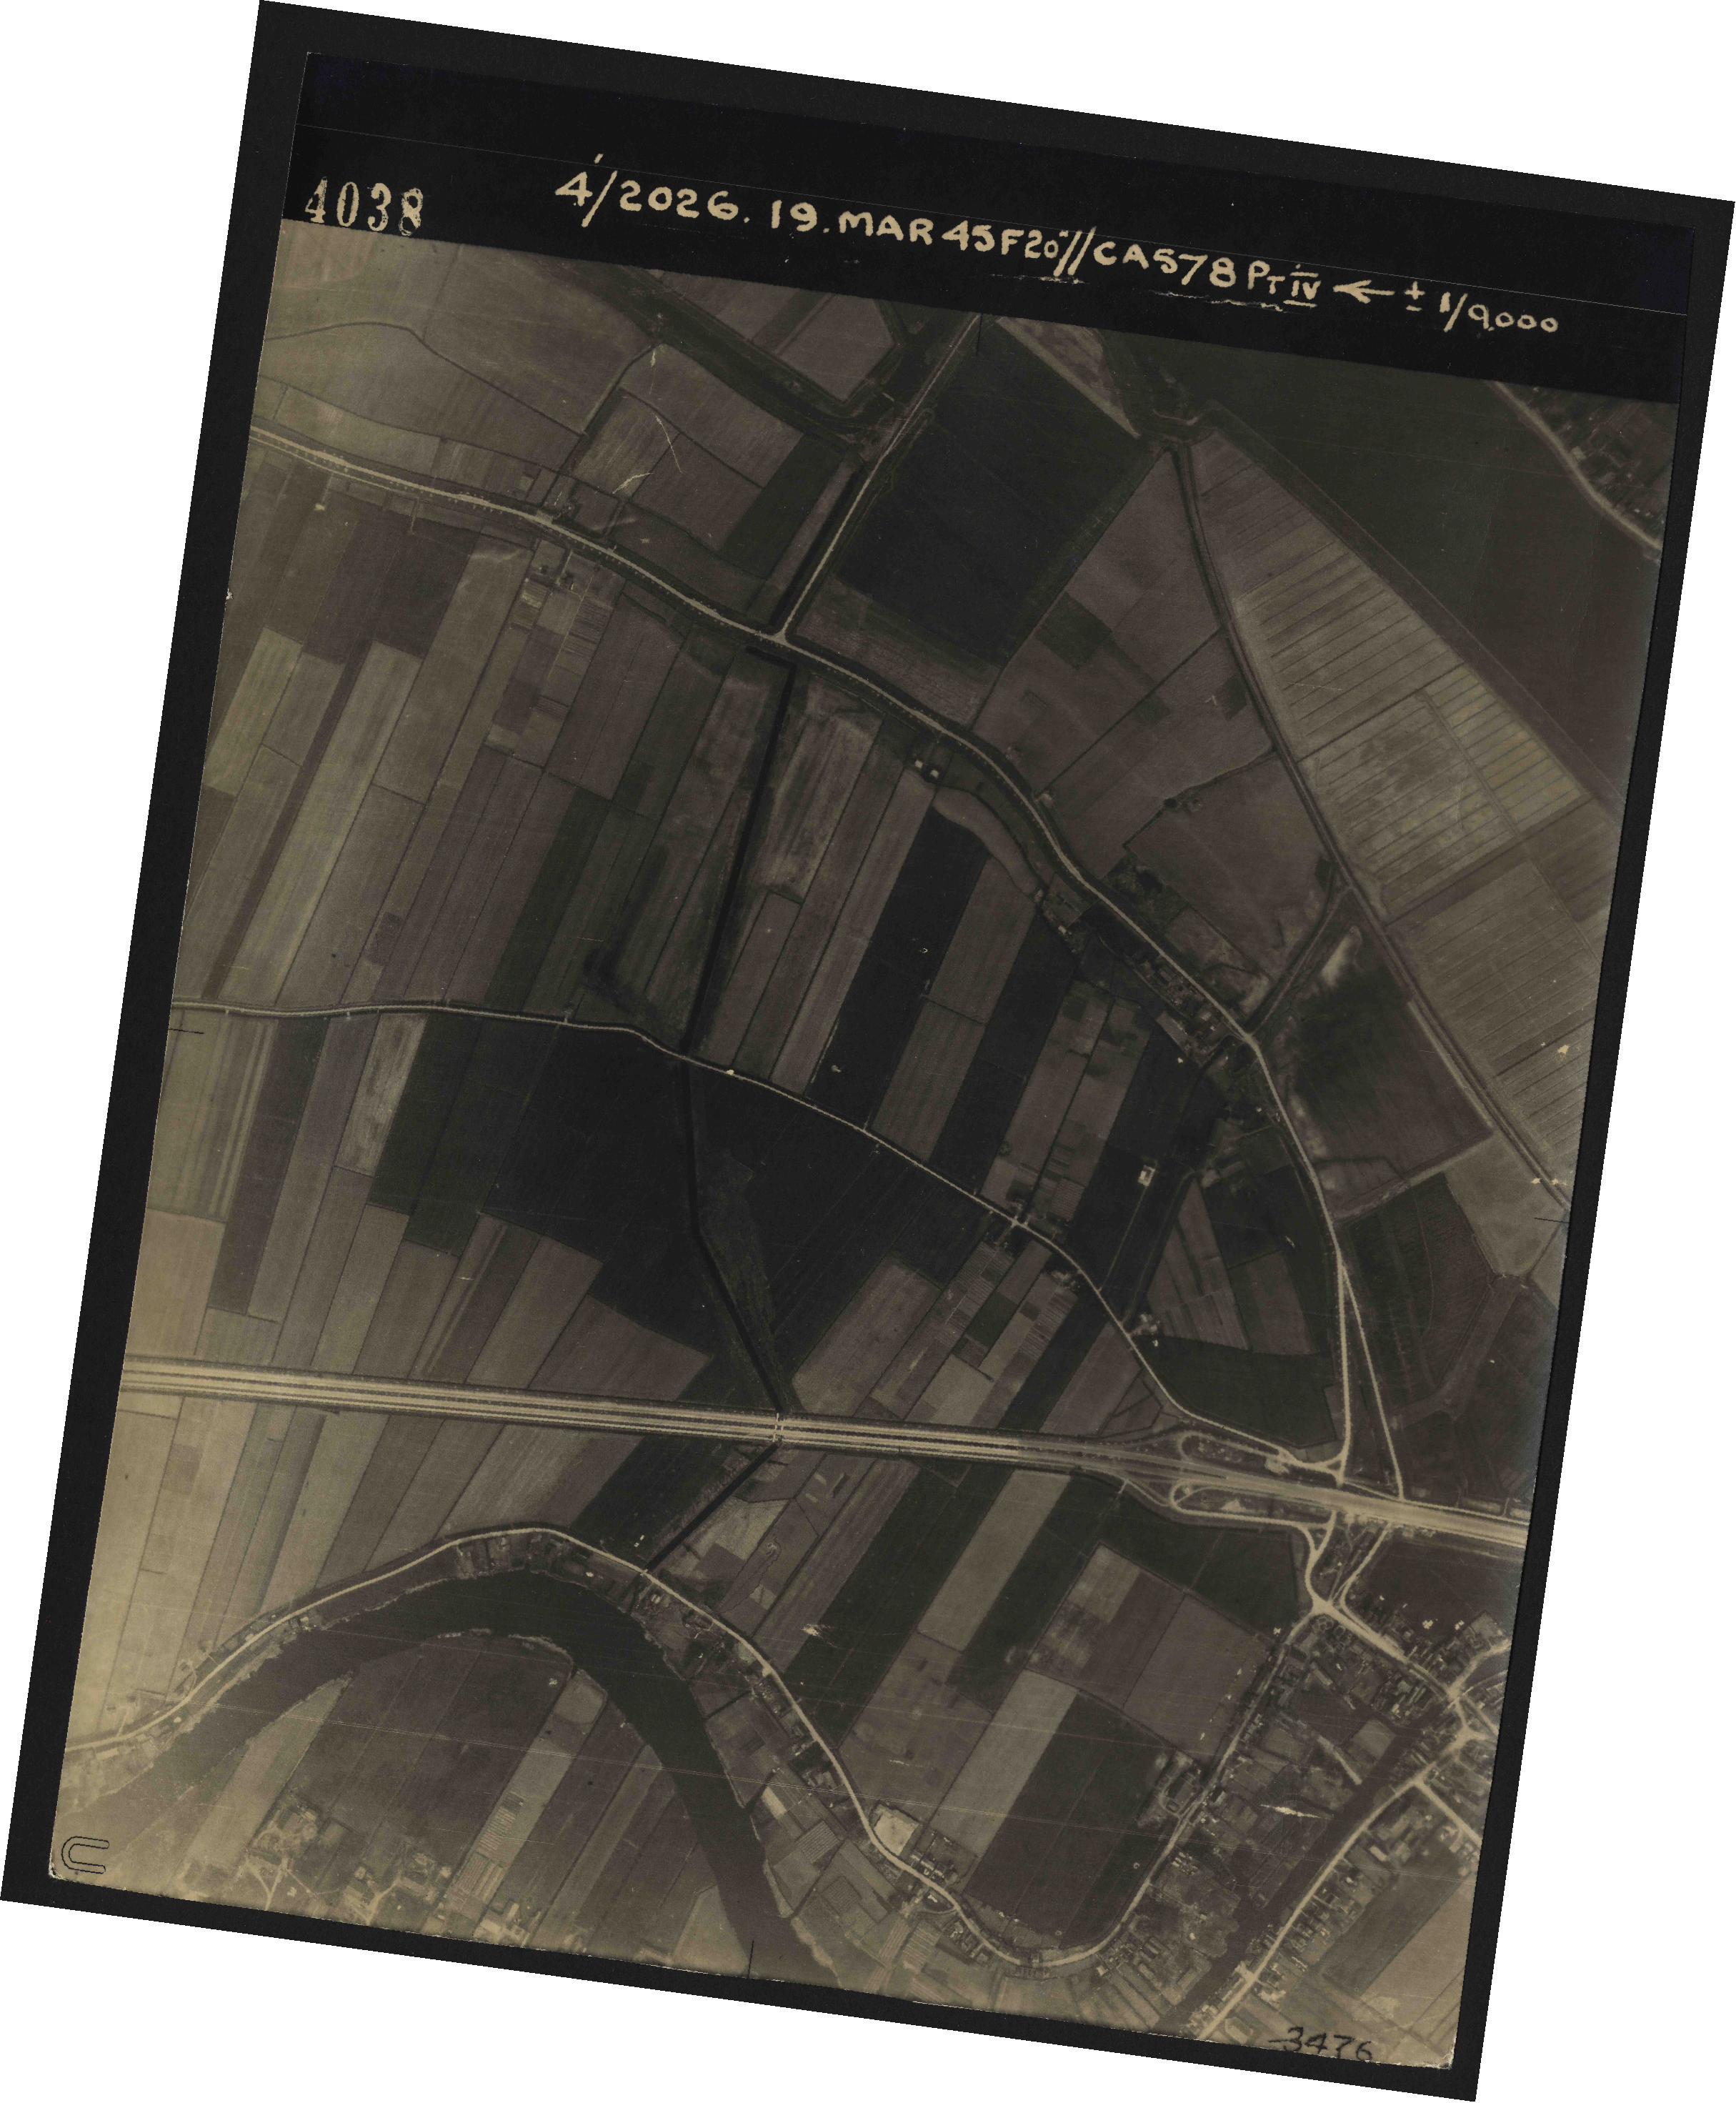 Collection RAF aerial photos 1940-1945 - flight 012, run 02, photo 4038